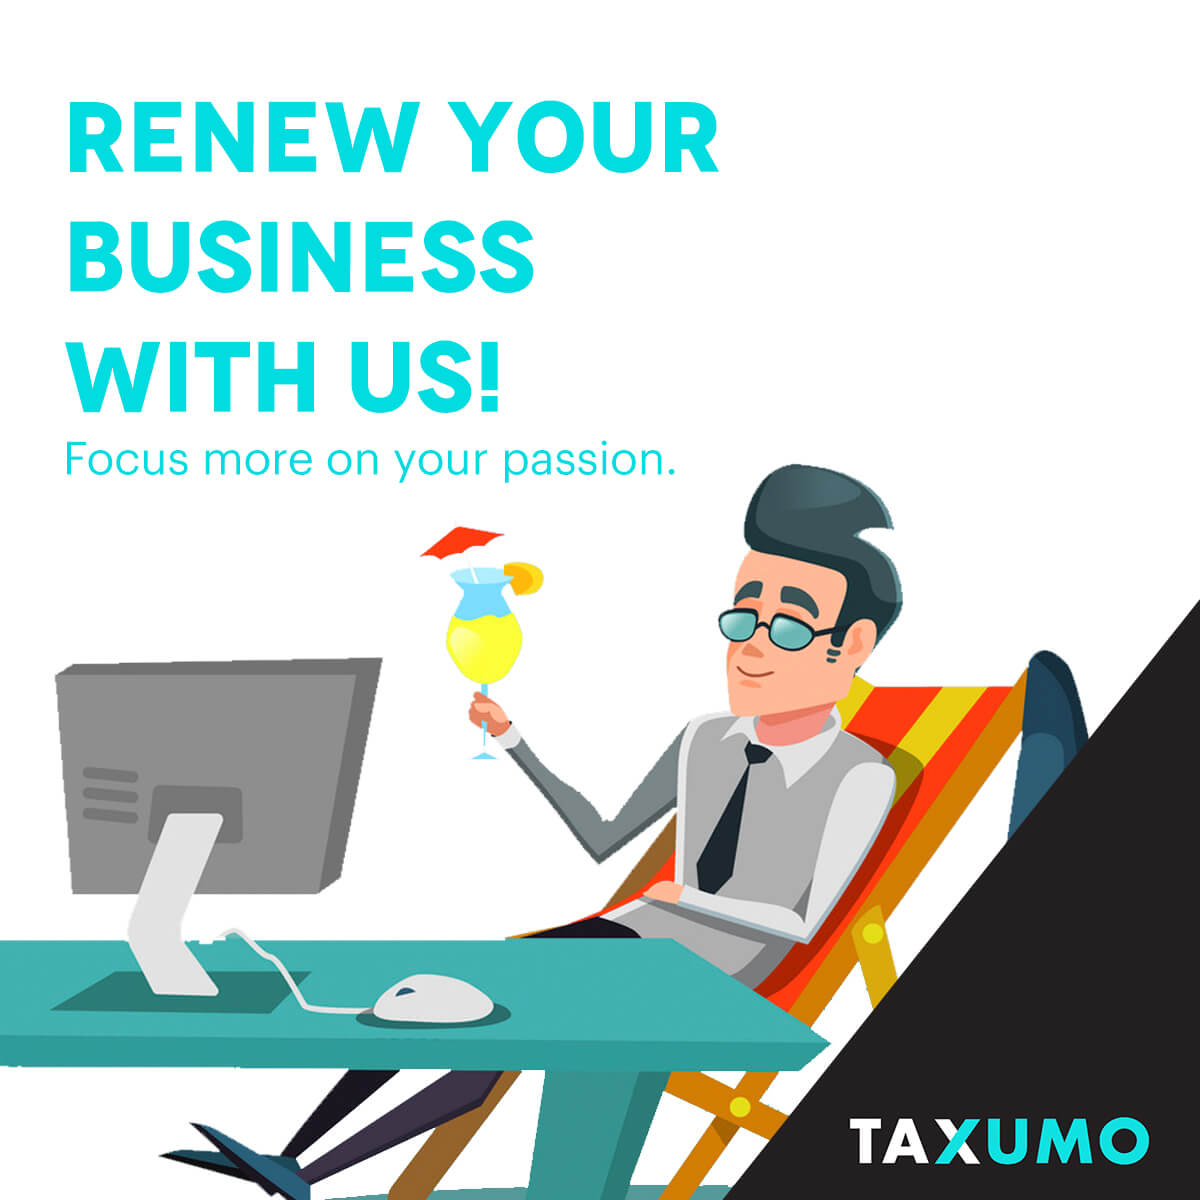 Get Your Business Permit Renewed This Coming New Year with Taxumo (Until December 30, 2019 Only)